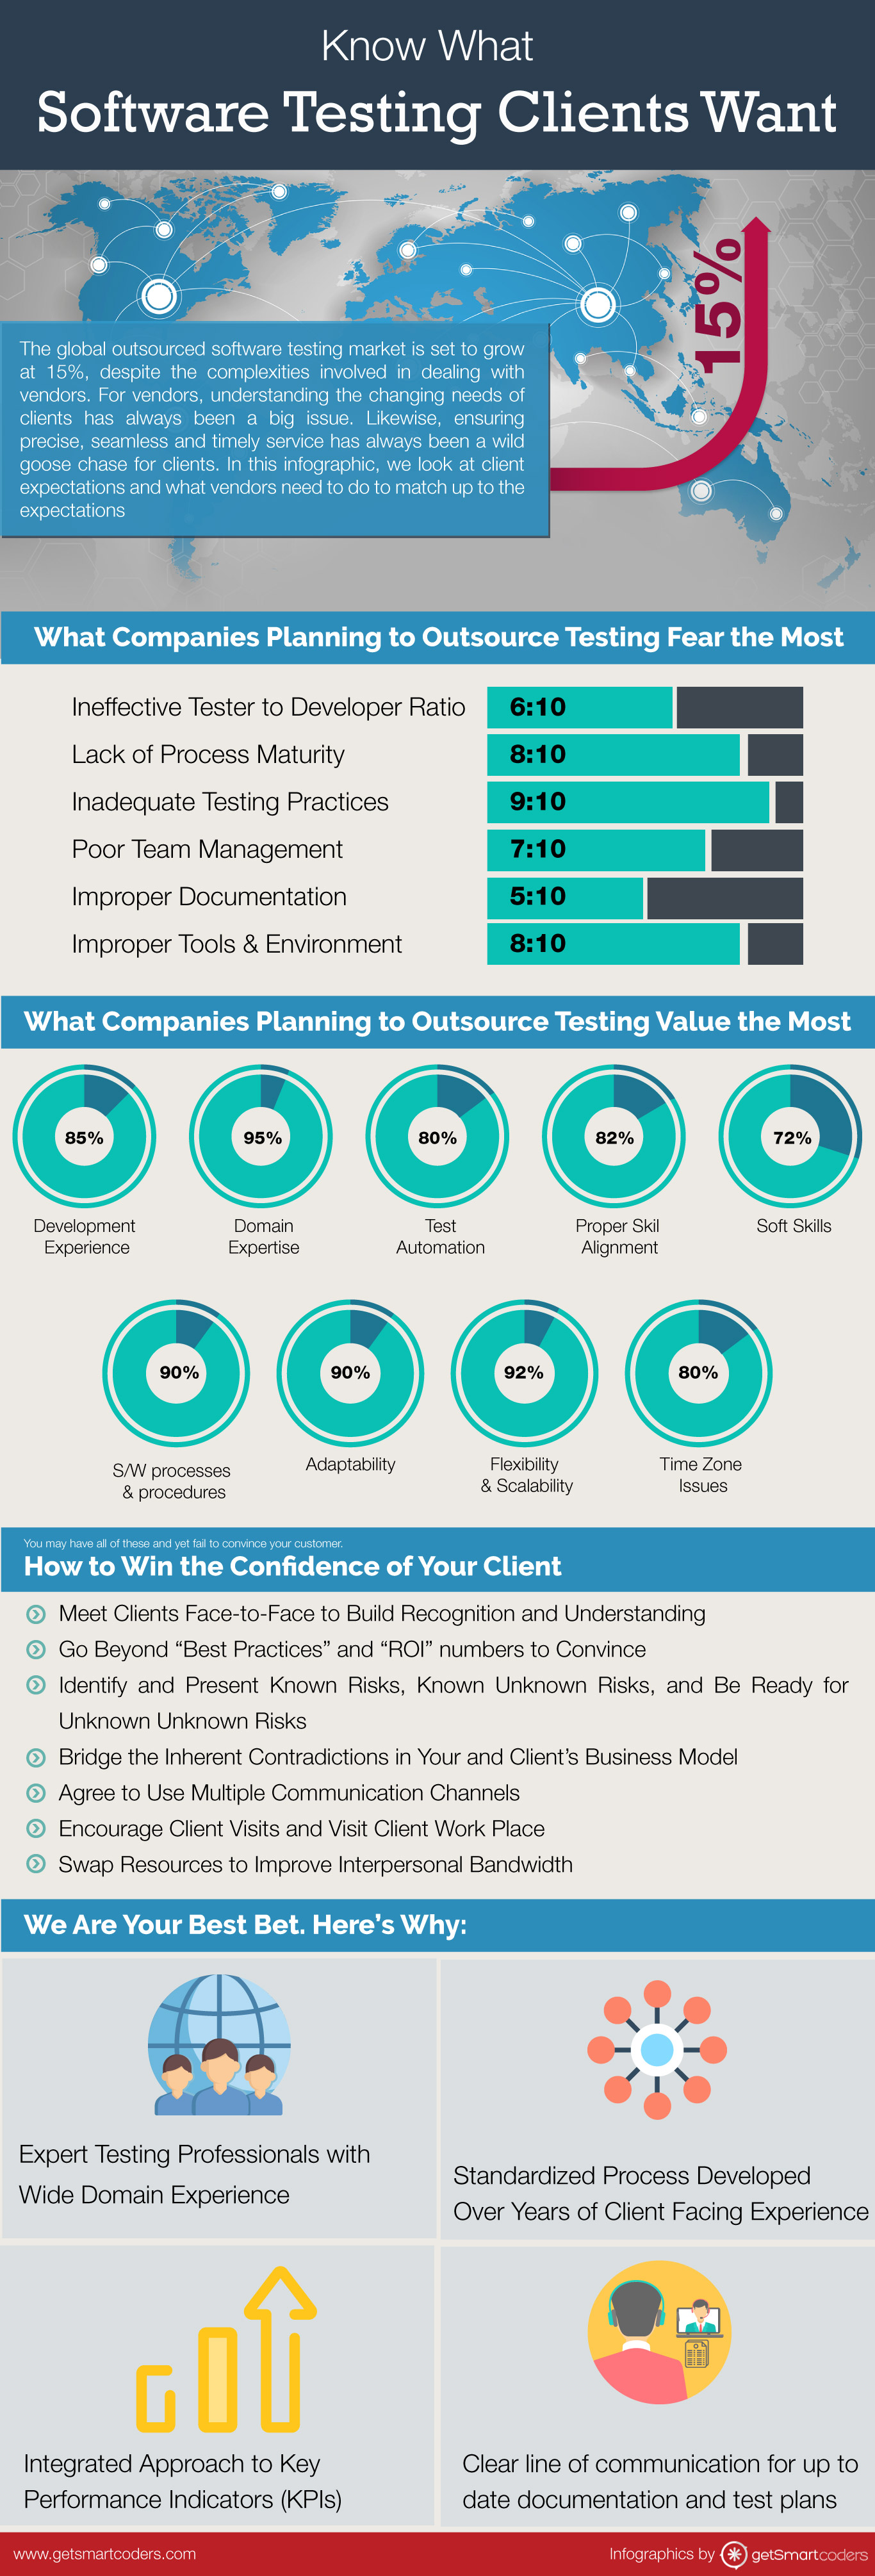 Know What Software Testing Clients Want